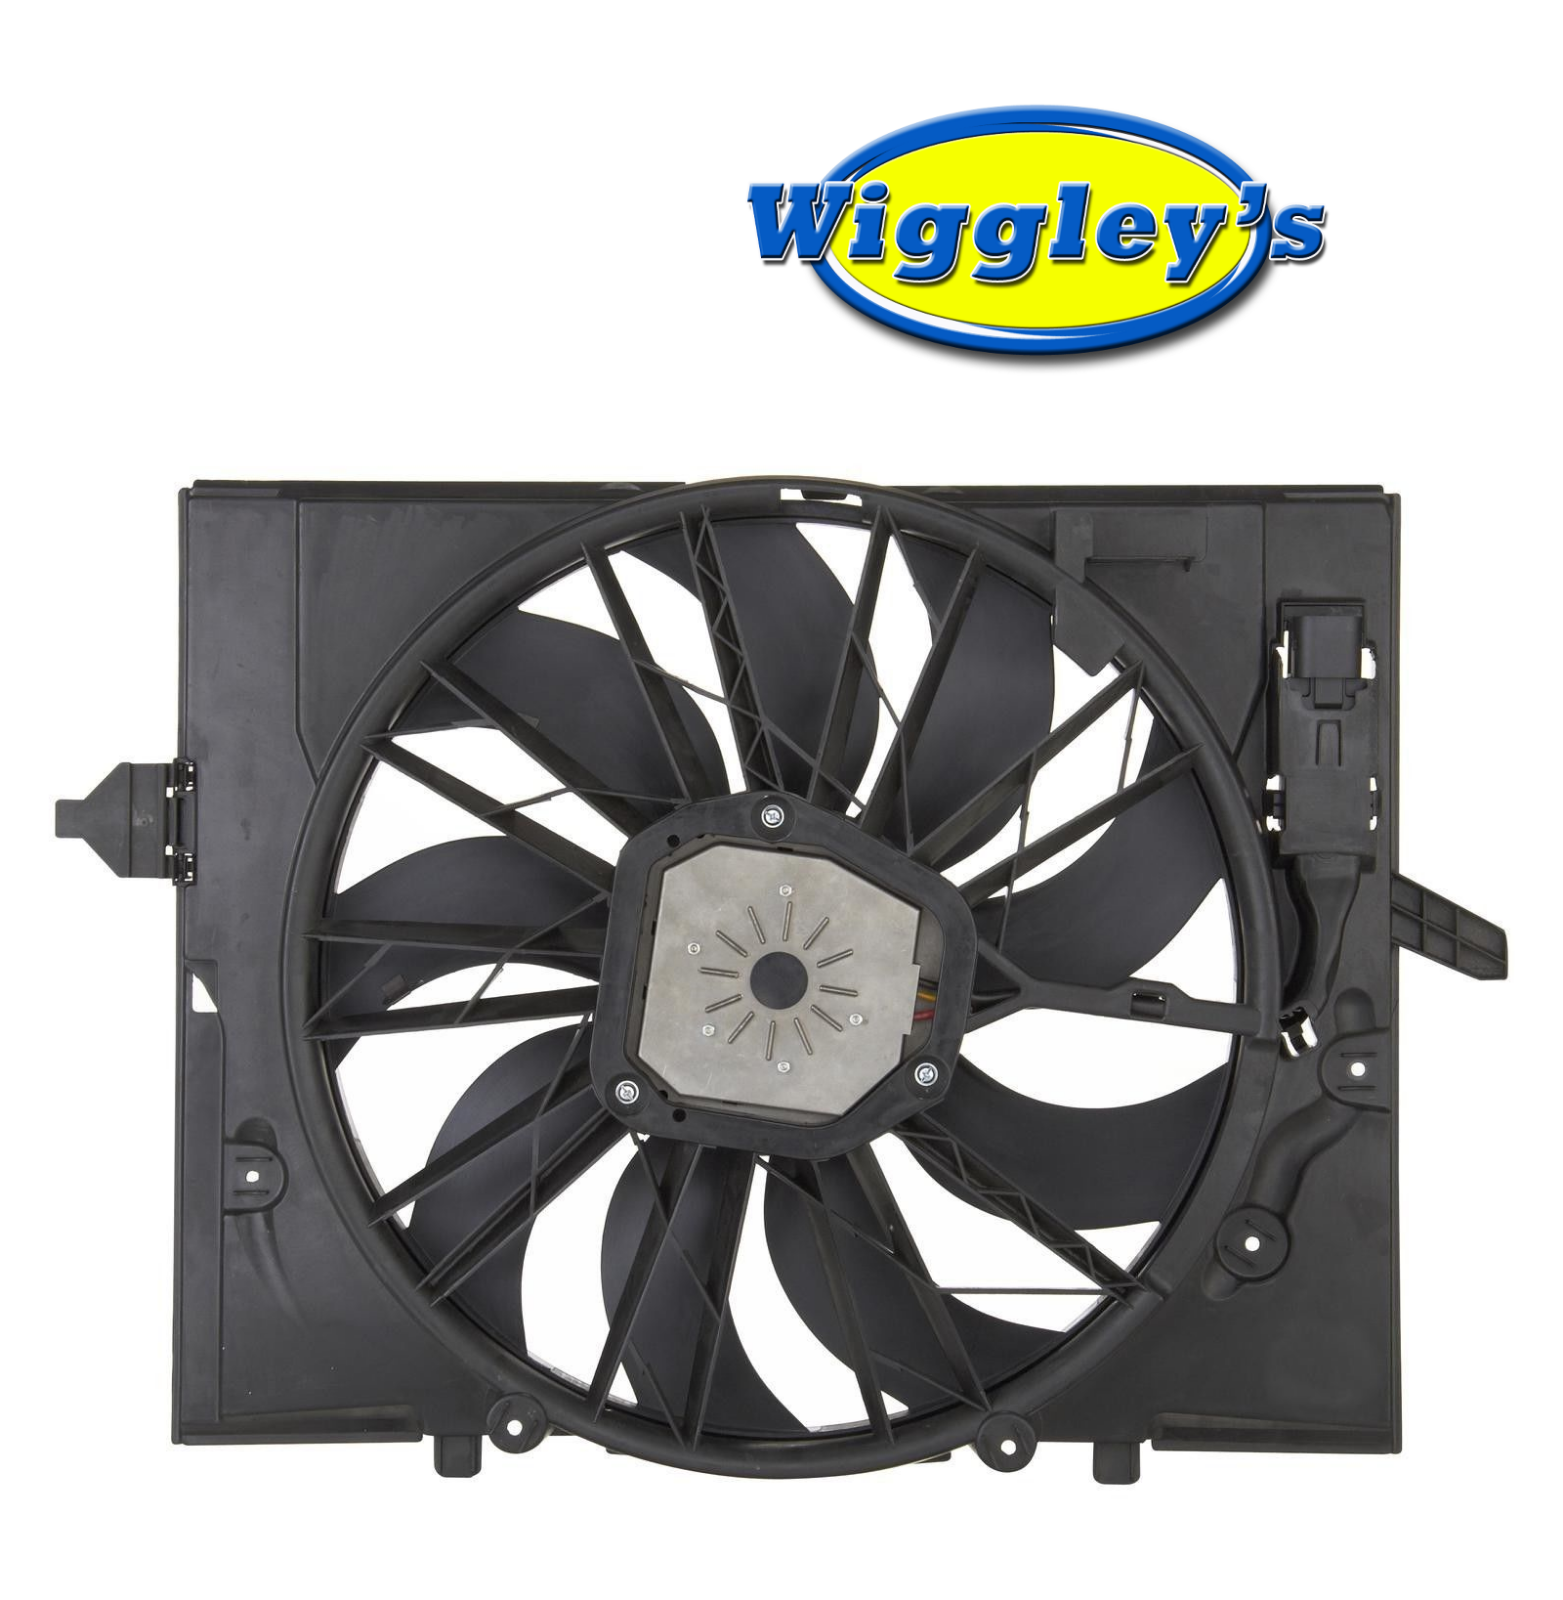 RADIATOR FAN BM3115107 FOR BMW 545i 525i 530i 528i 645ci 750i 528xi 750li